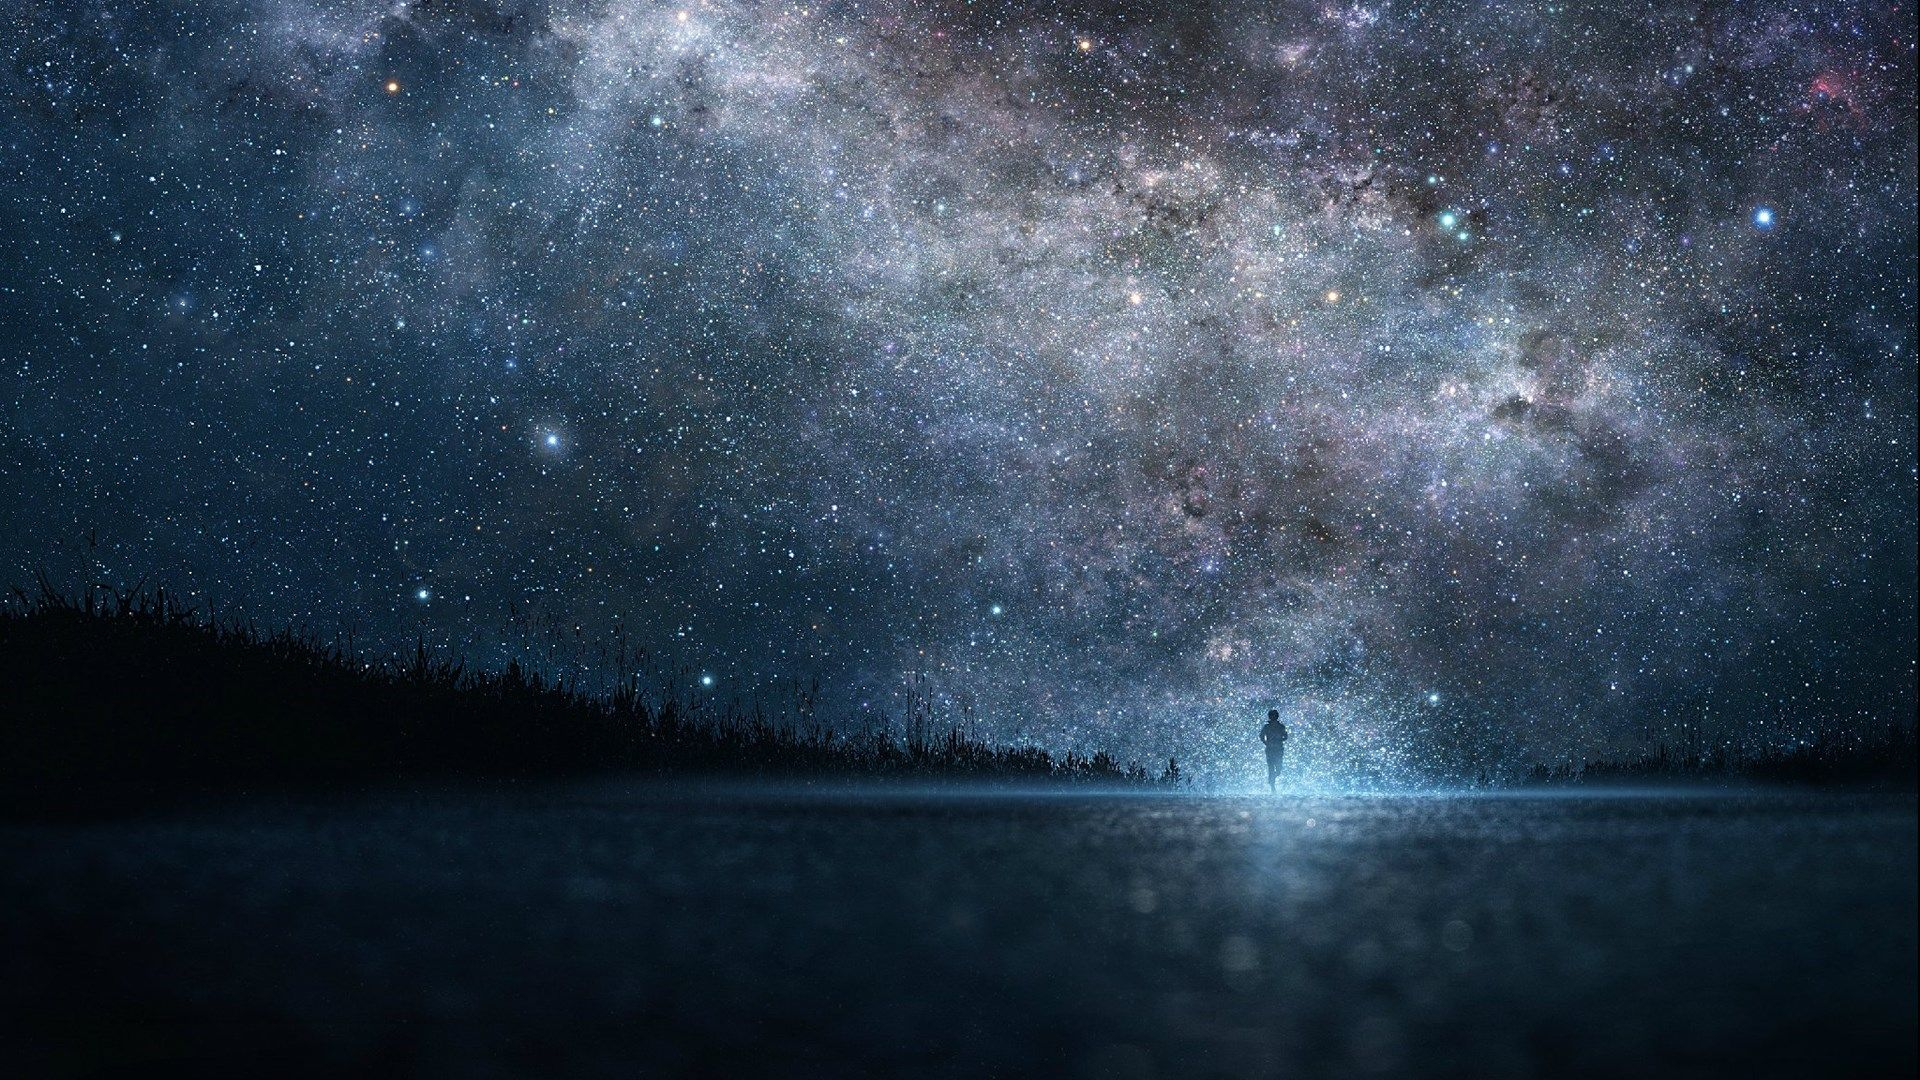 Pin By Cloud Rao On Photography Sky Photography Wallpaper Space Anime Wallpaper